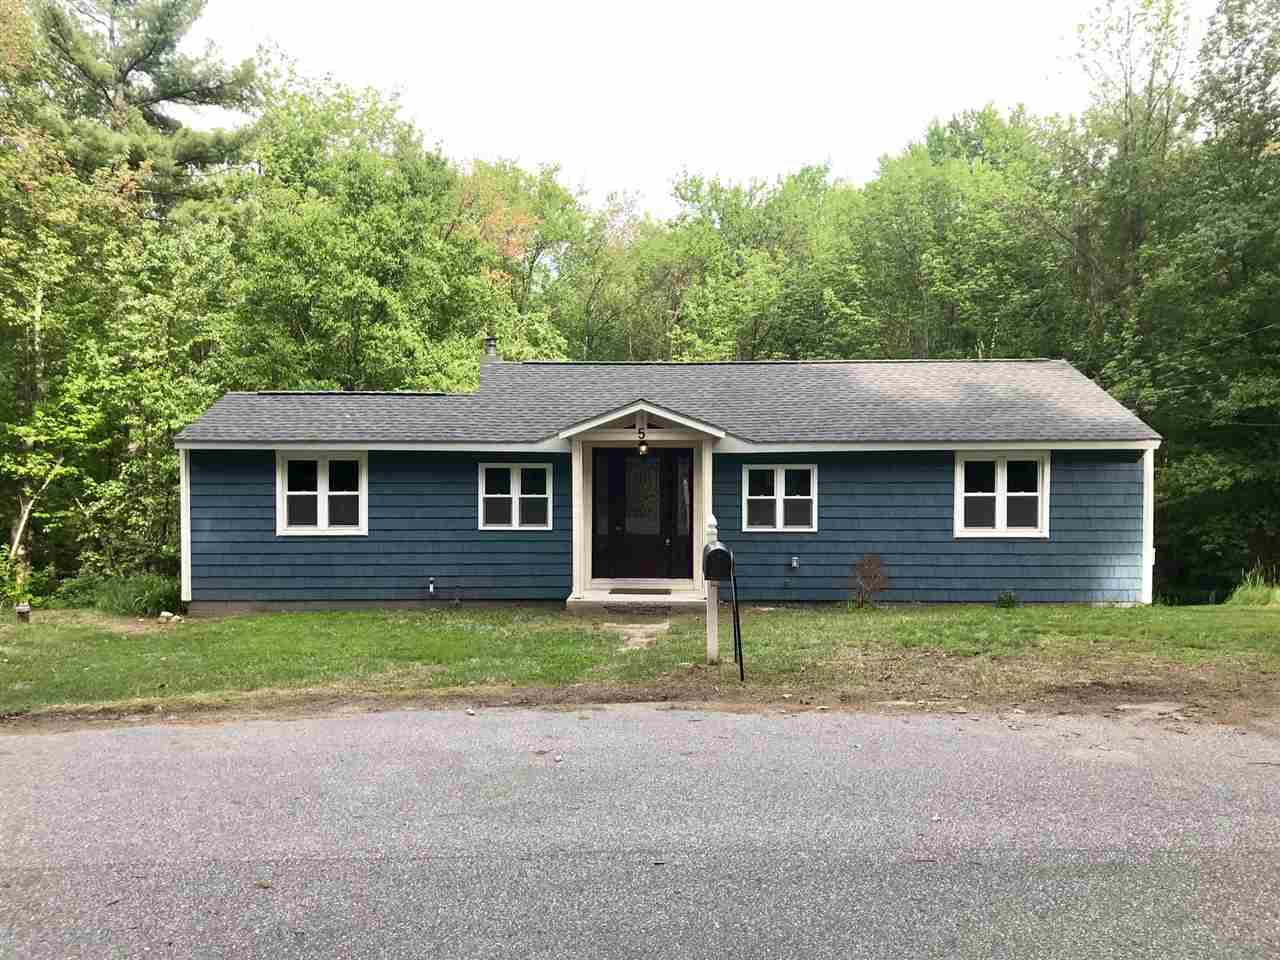 Photo of 5 Silver Spring Drive Bedford NH 03110